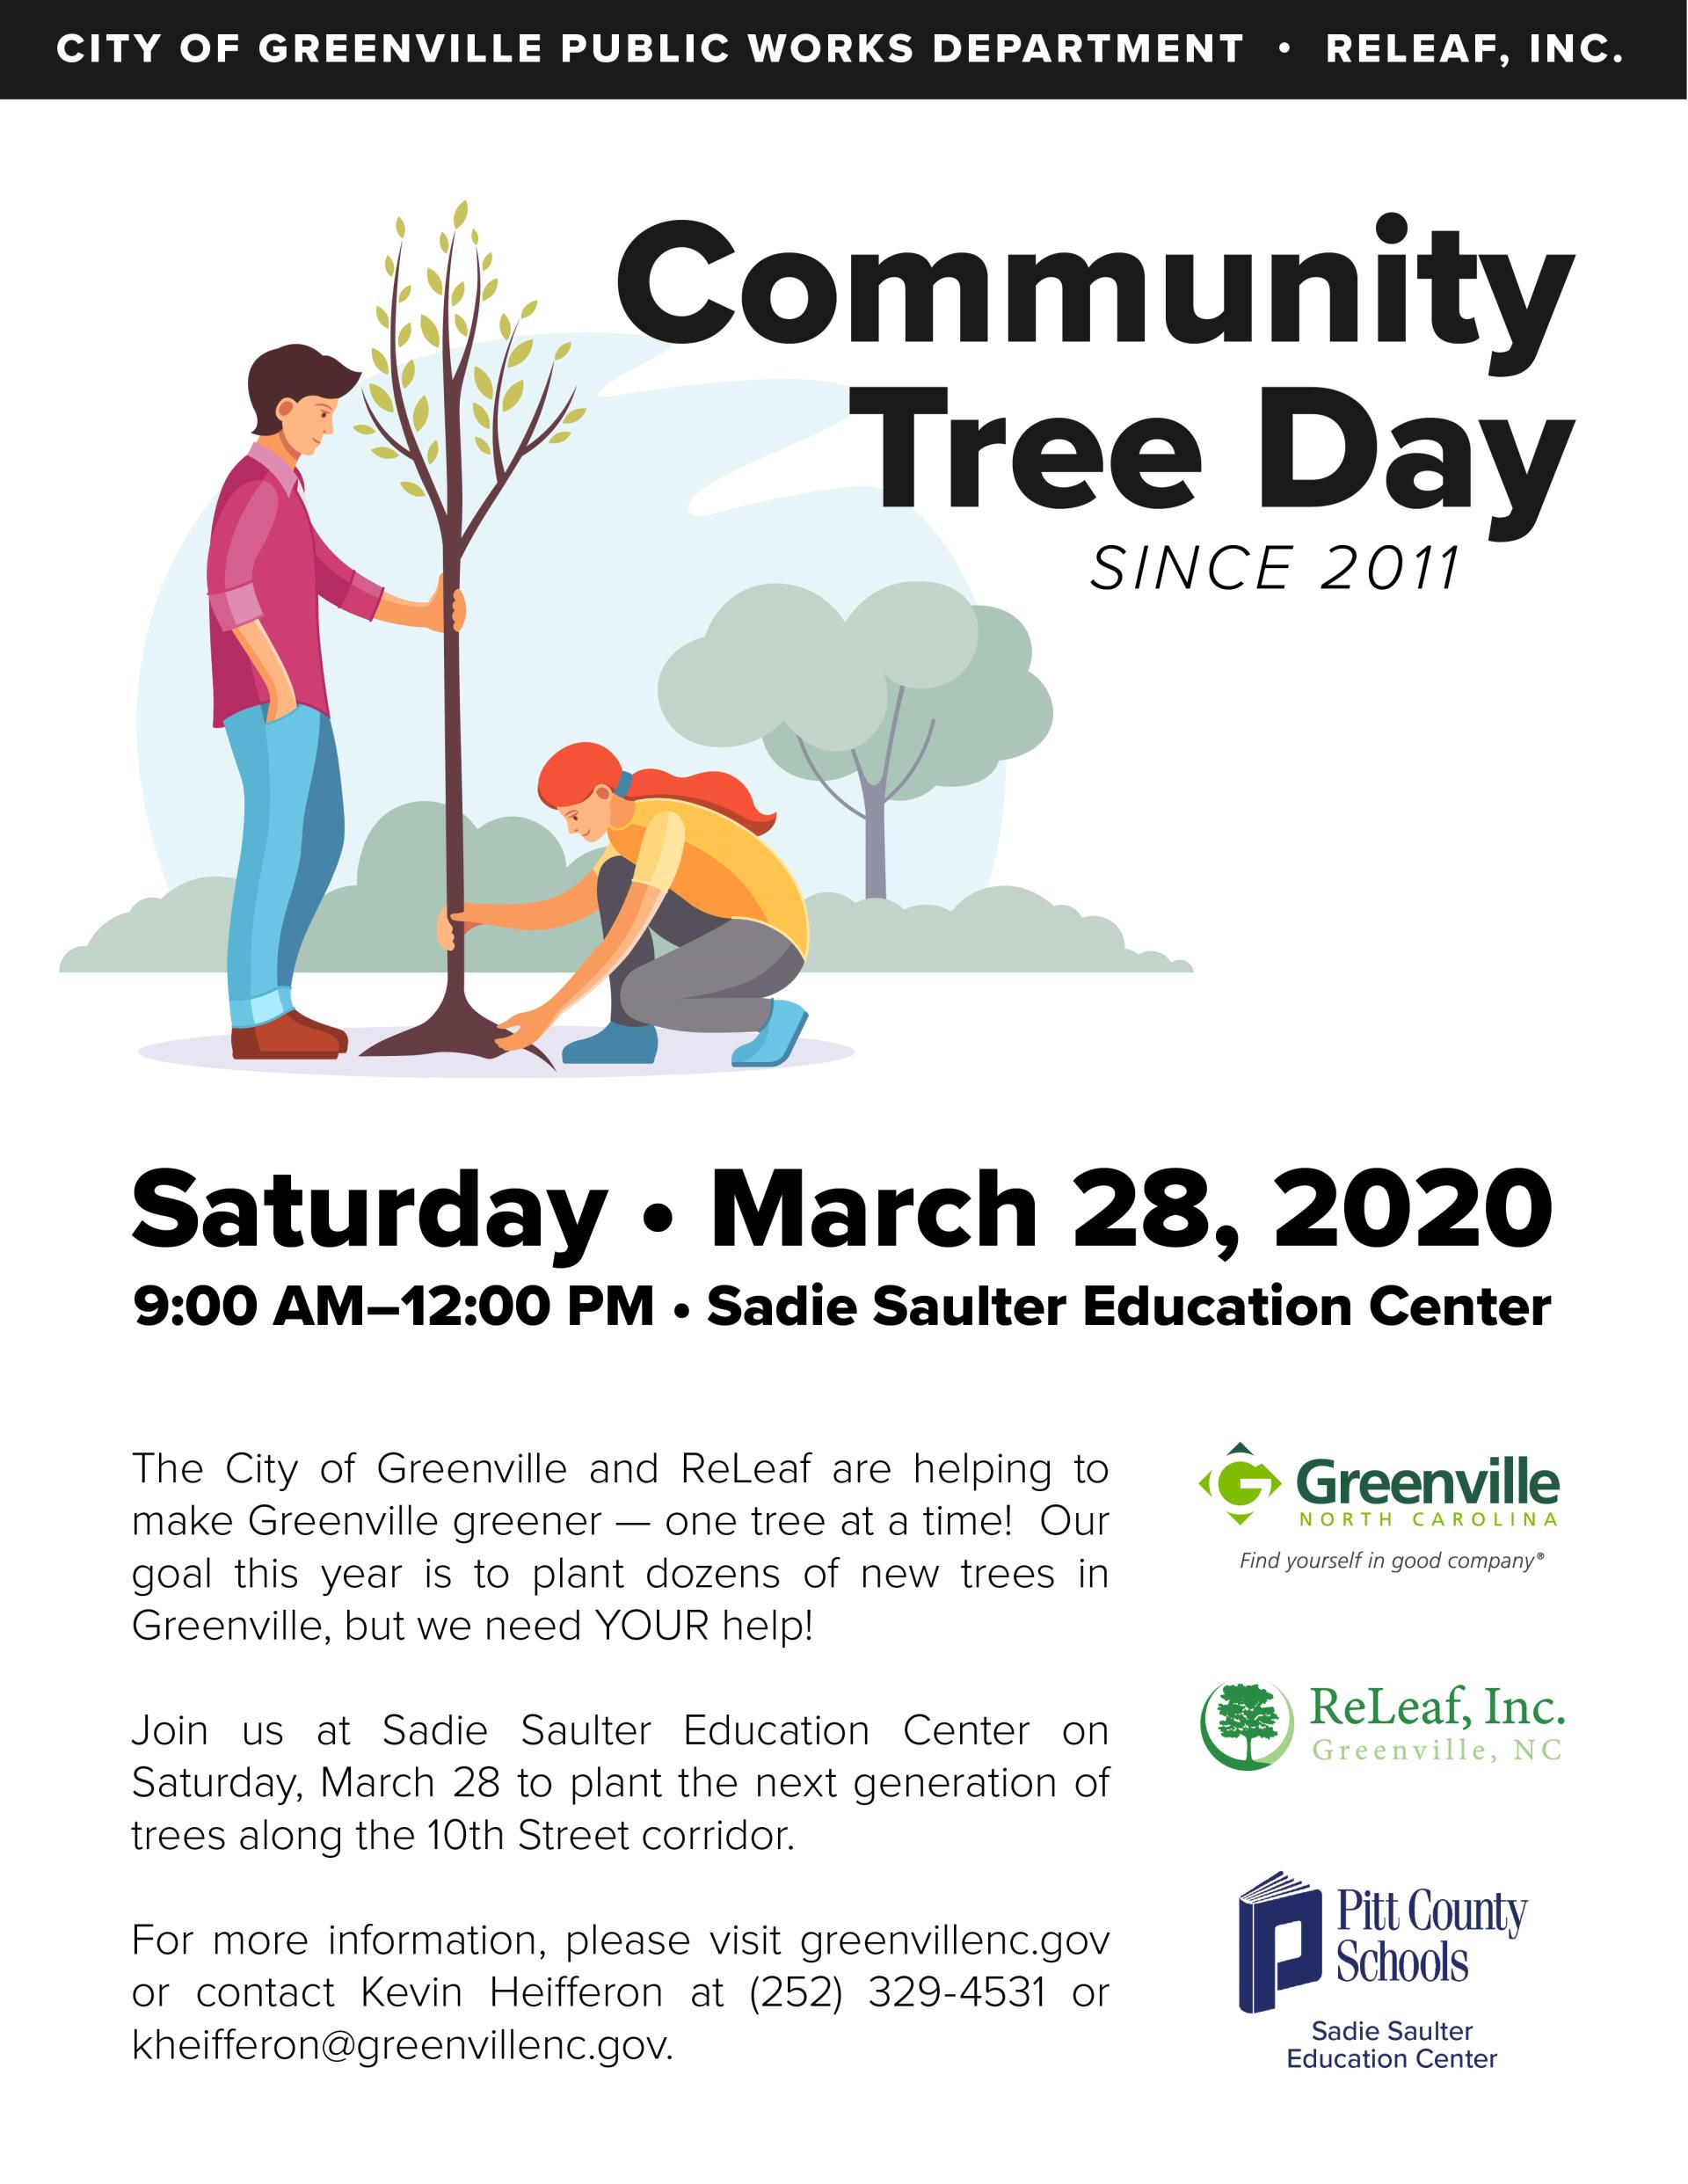 2020 Community Tree Day